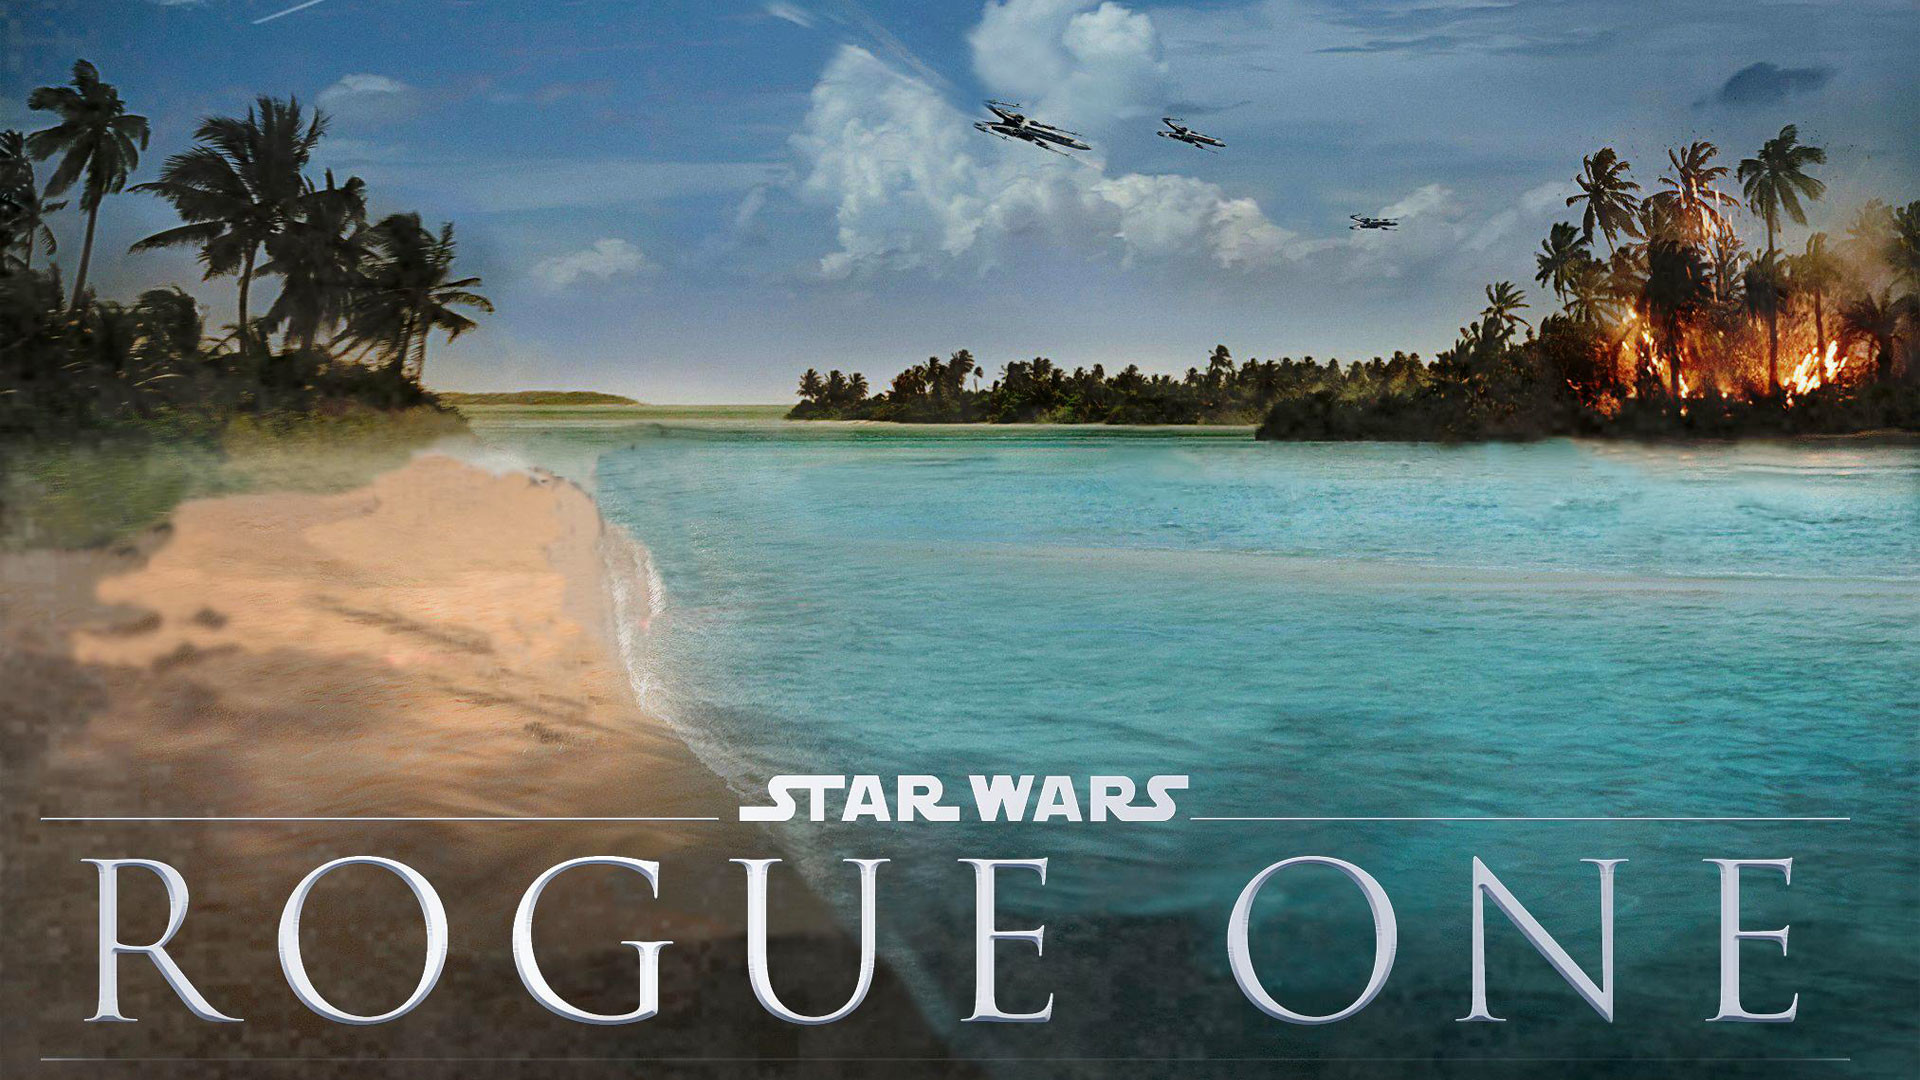 Rogue One Wallpapers Wallpapertag